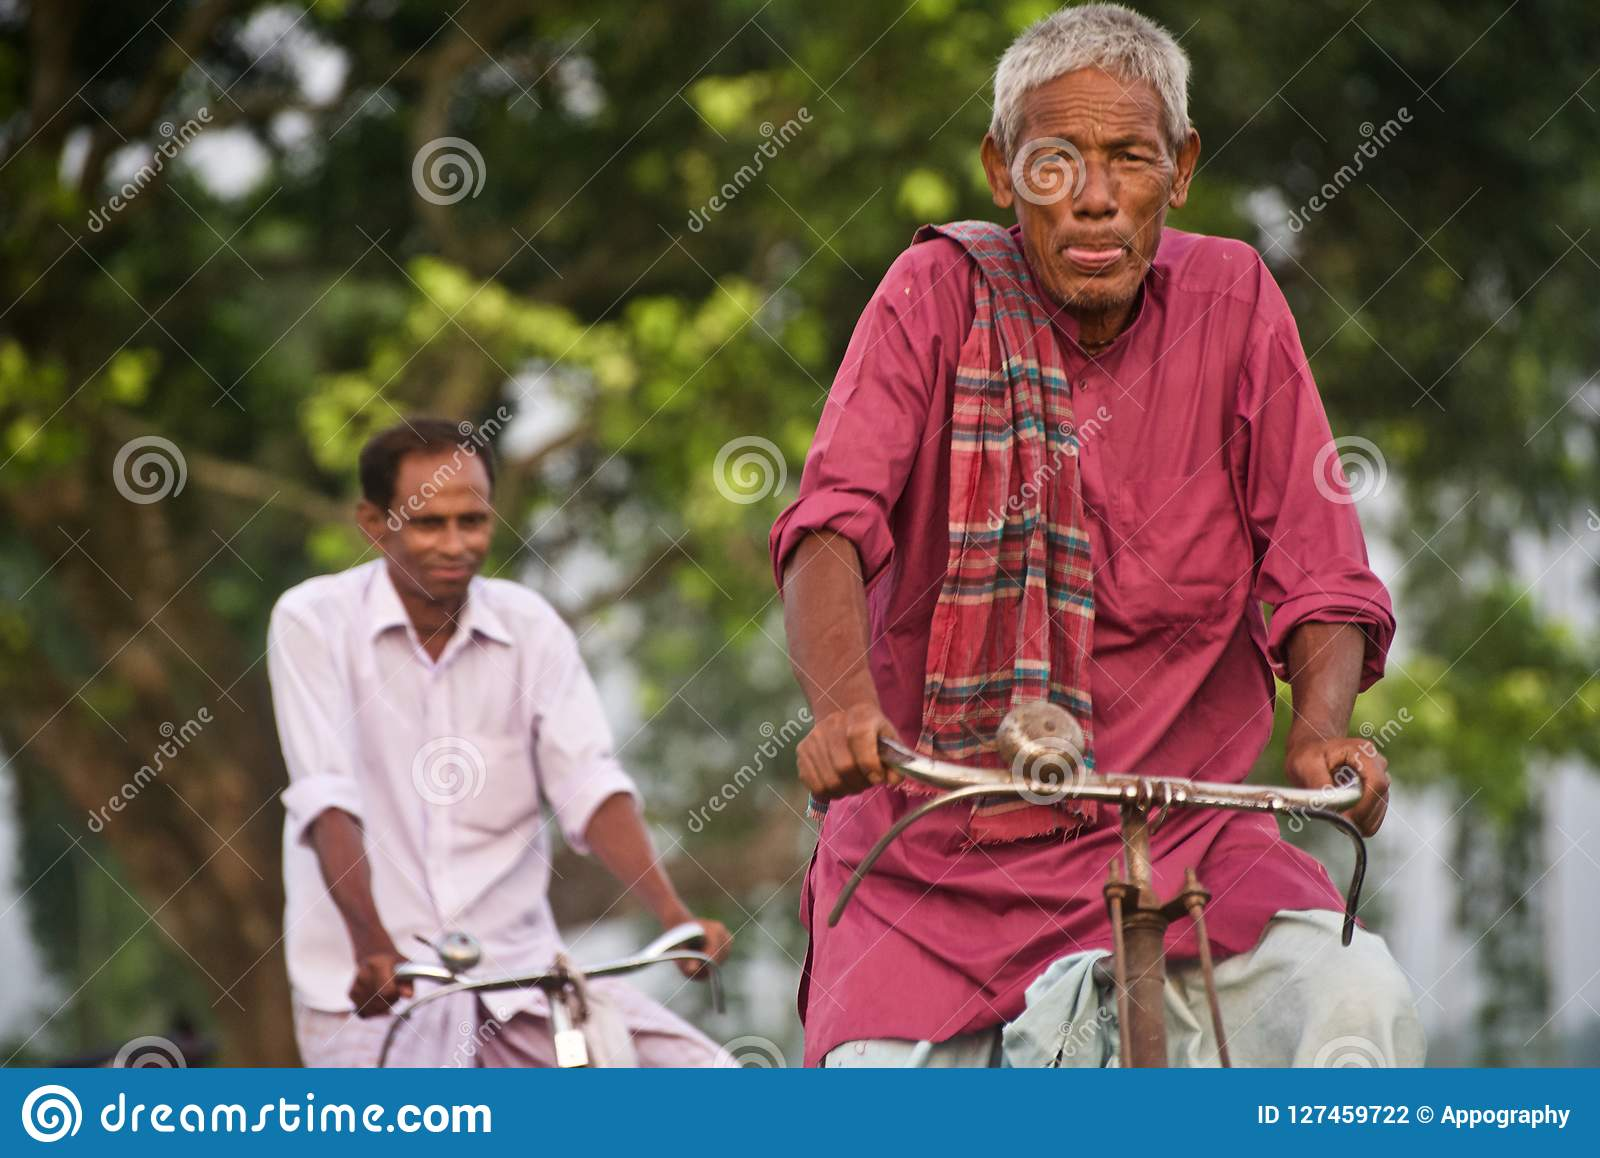 Old man riding a bicycle in a village road unique photo